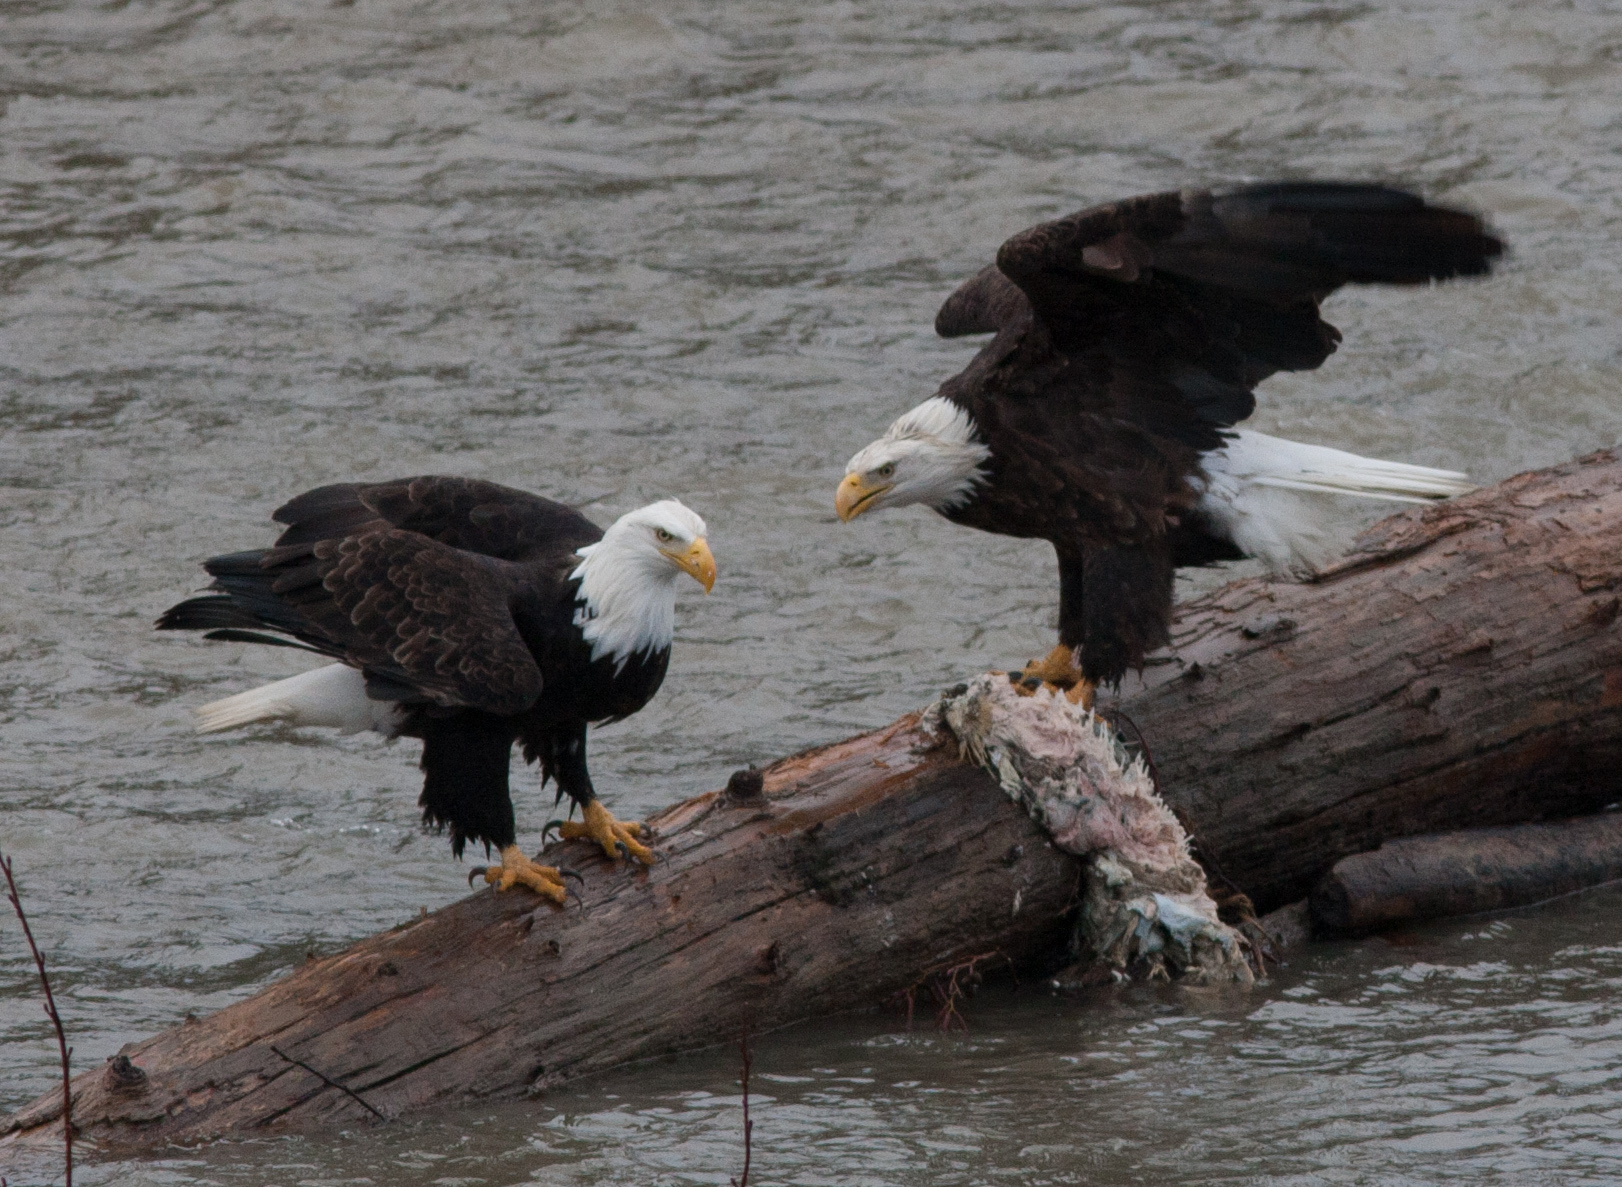 Eagles on a log on the Nooksack River with their catch. Photo by Phil Green (The Nature Conservancy's Yellow Island steward).